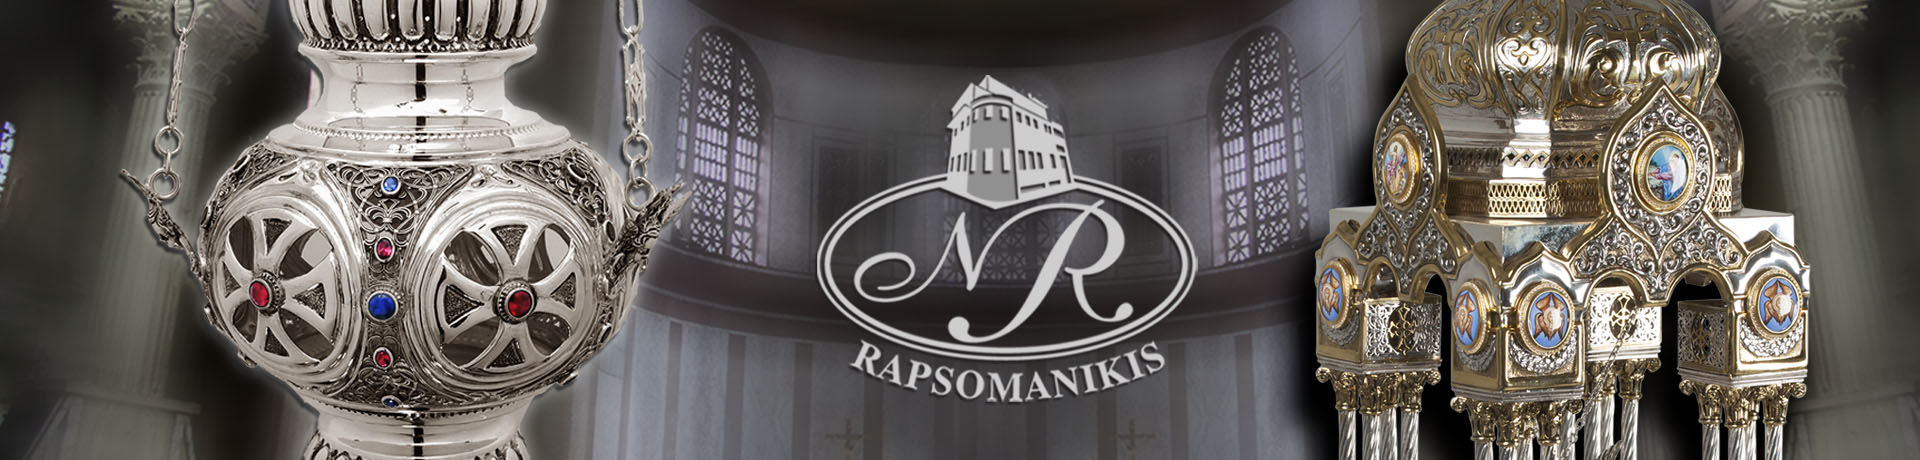 Rapsomanikis Center Banner01